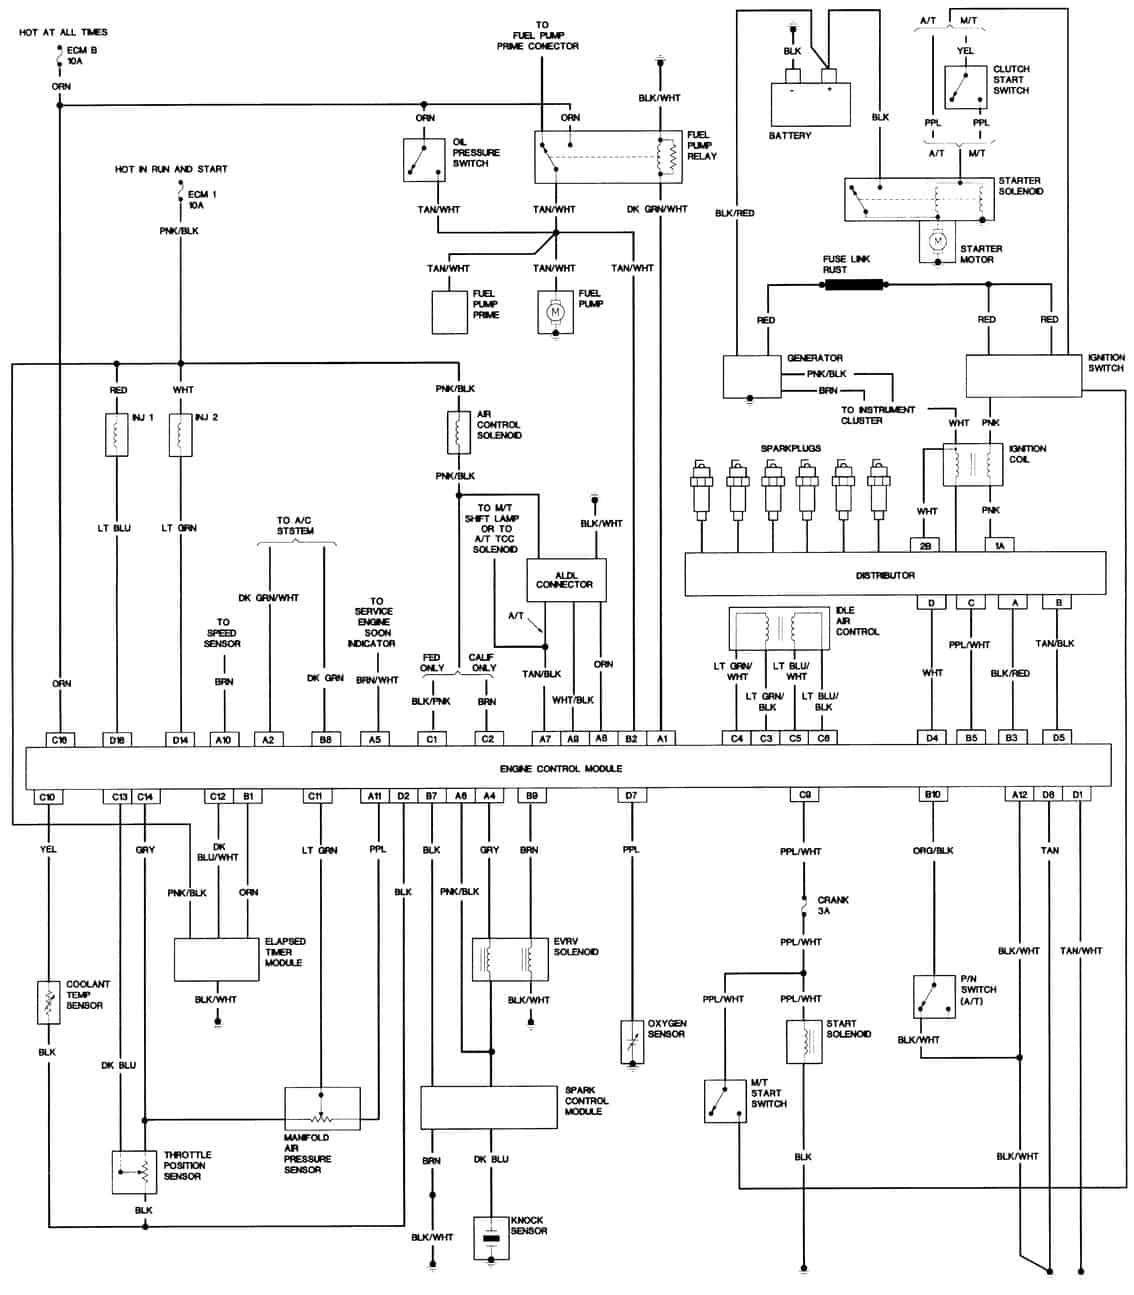 1988 Chevy s10 V6 engine wiring diagram for no spark